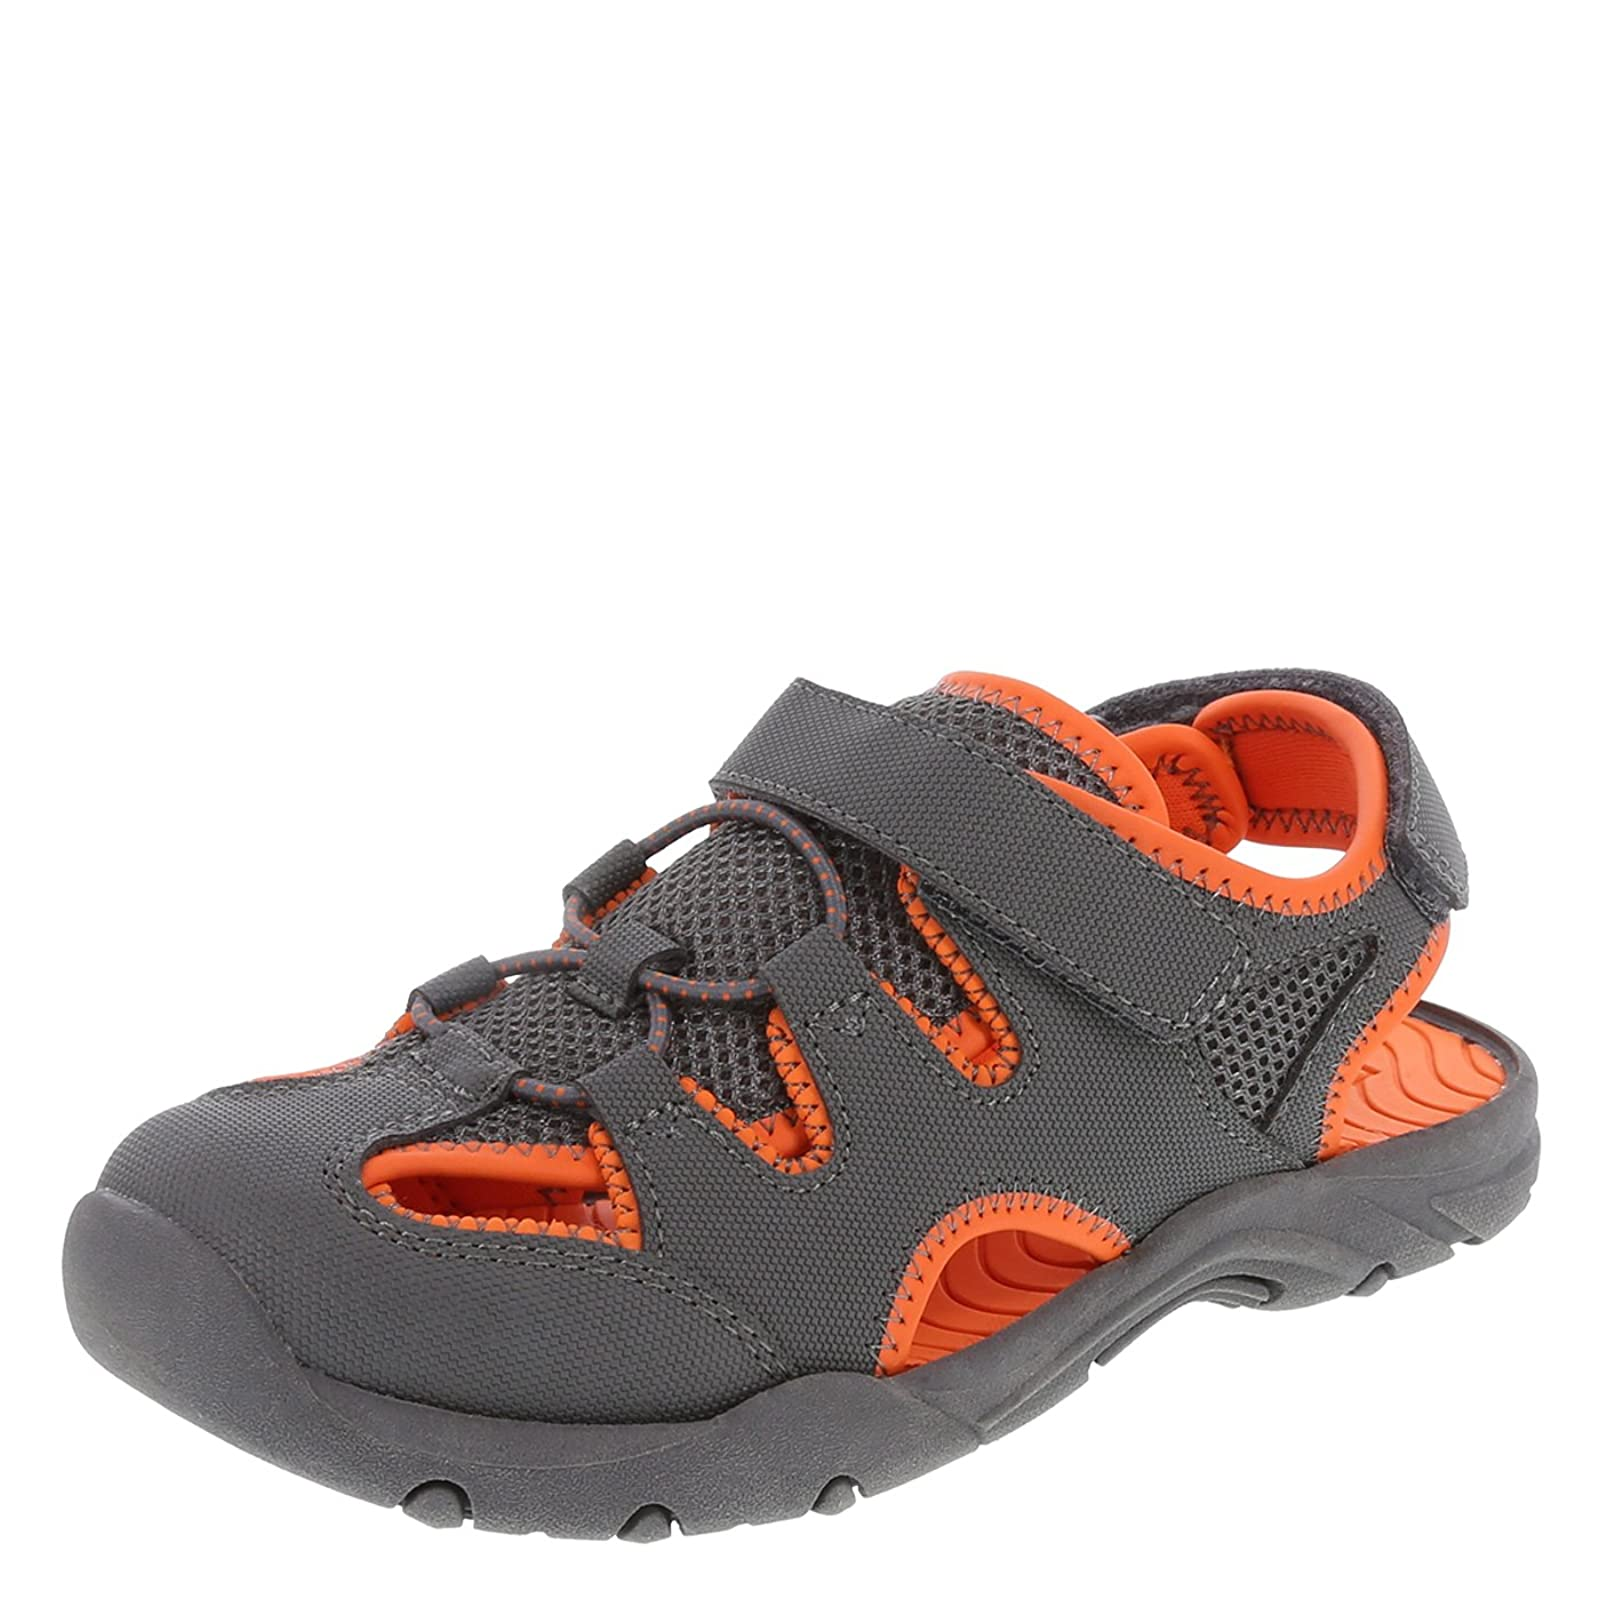 Rugged Outback Boy's Grey Orange Sport 173963130 Grey Orange - 4